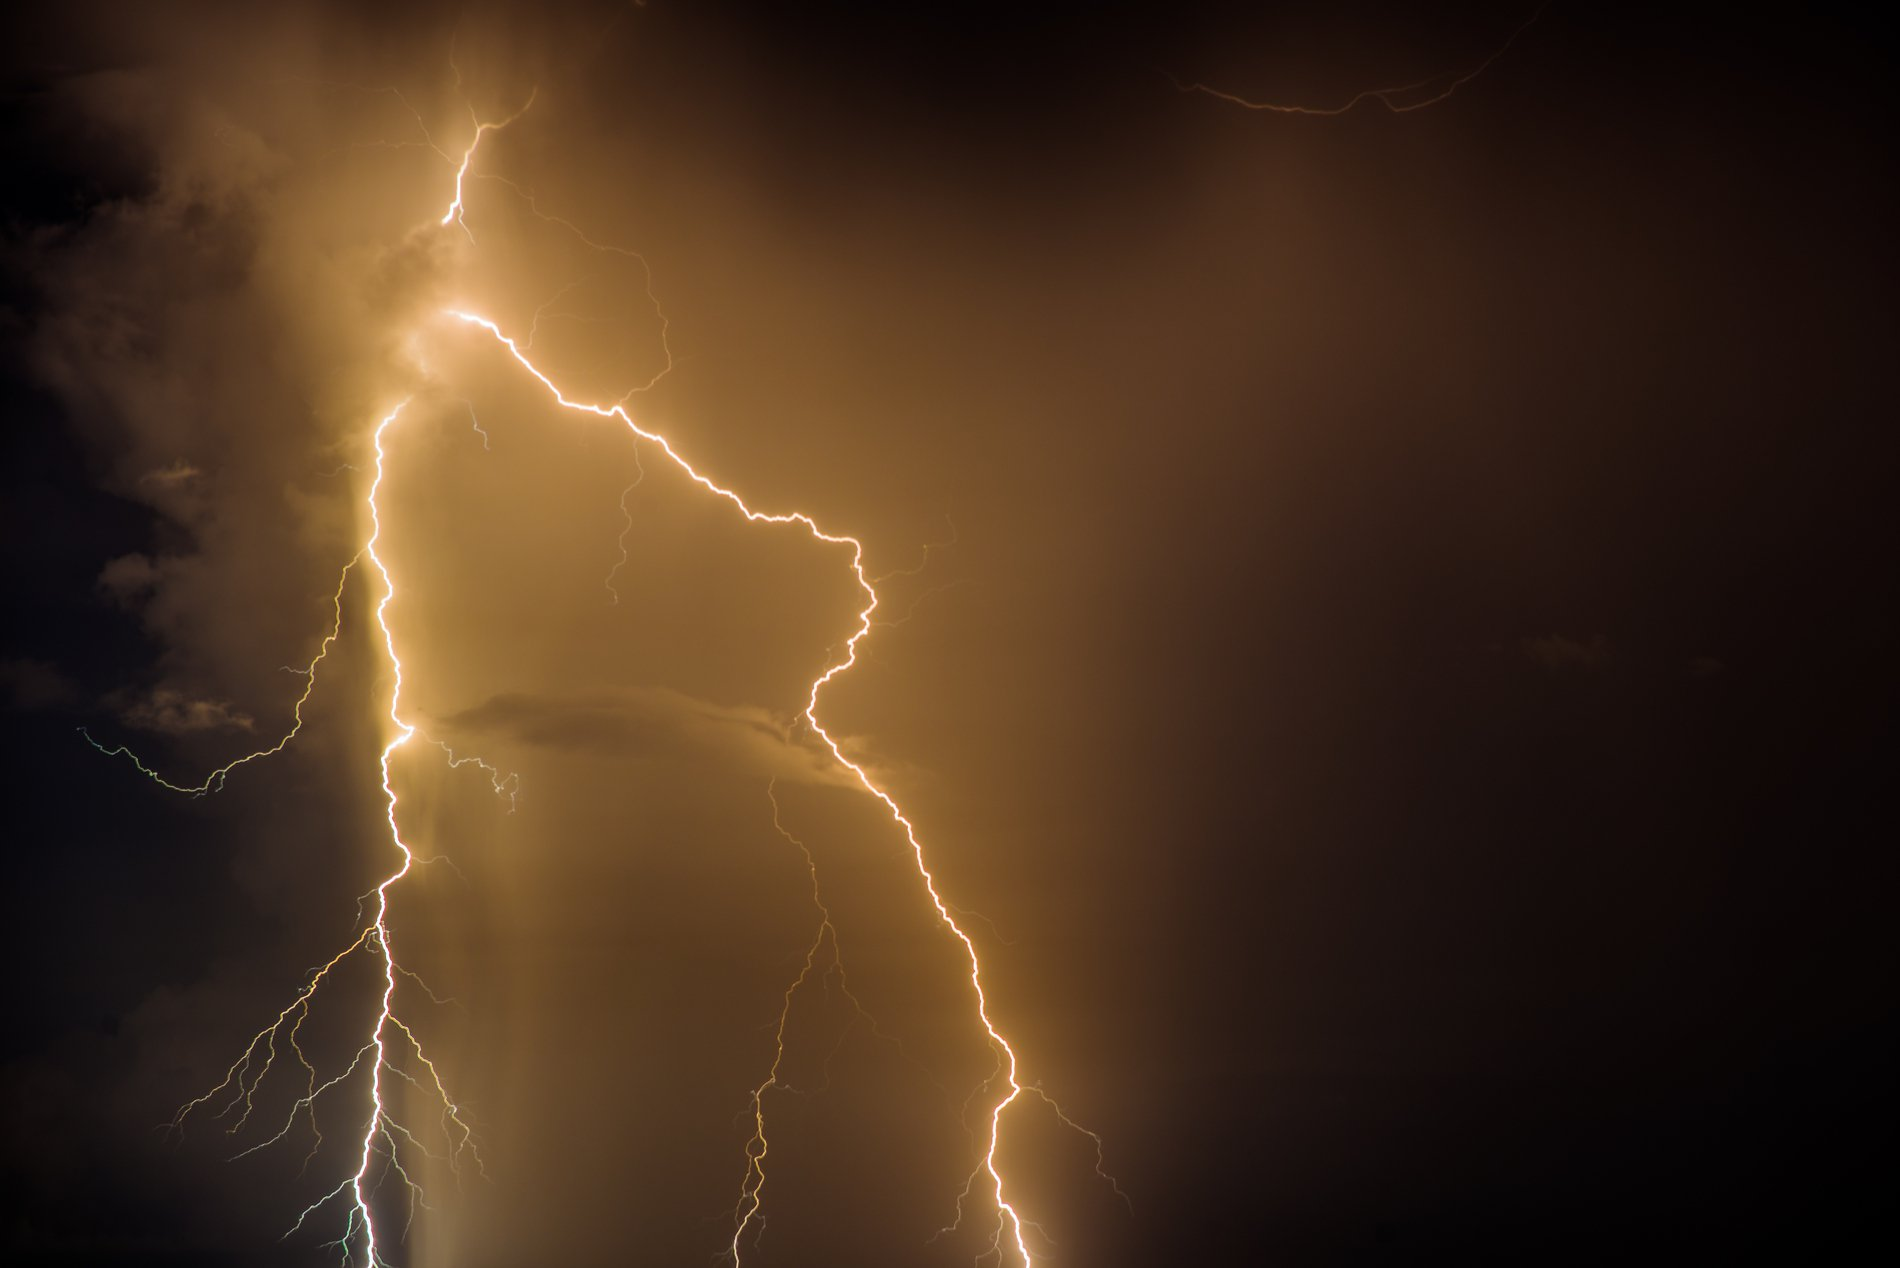 Payment Provider Bitrefill Runs Successful Lightning Transaction ...